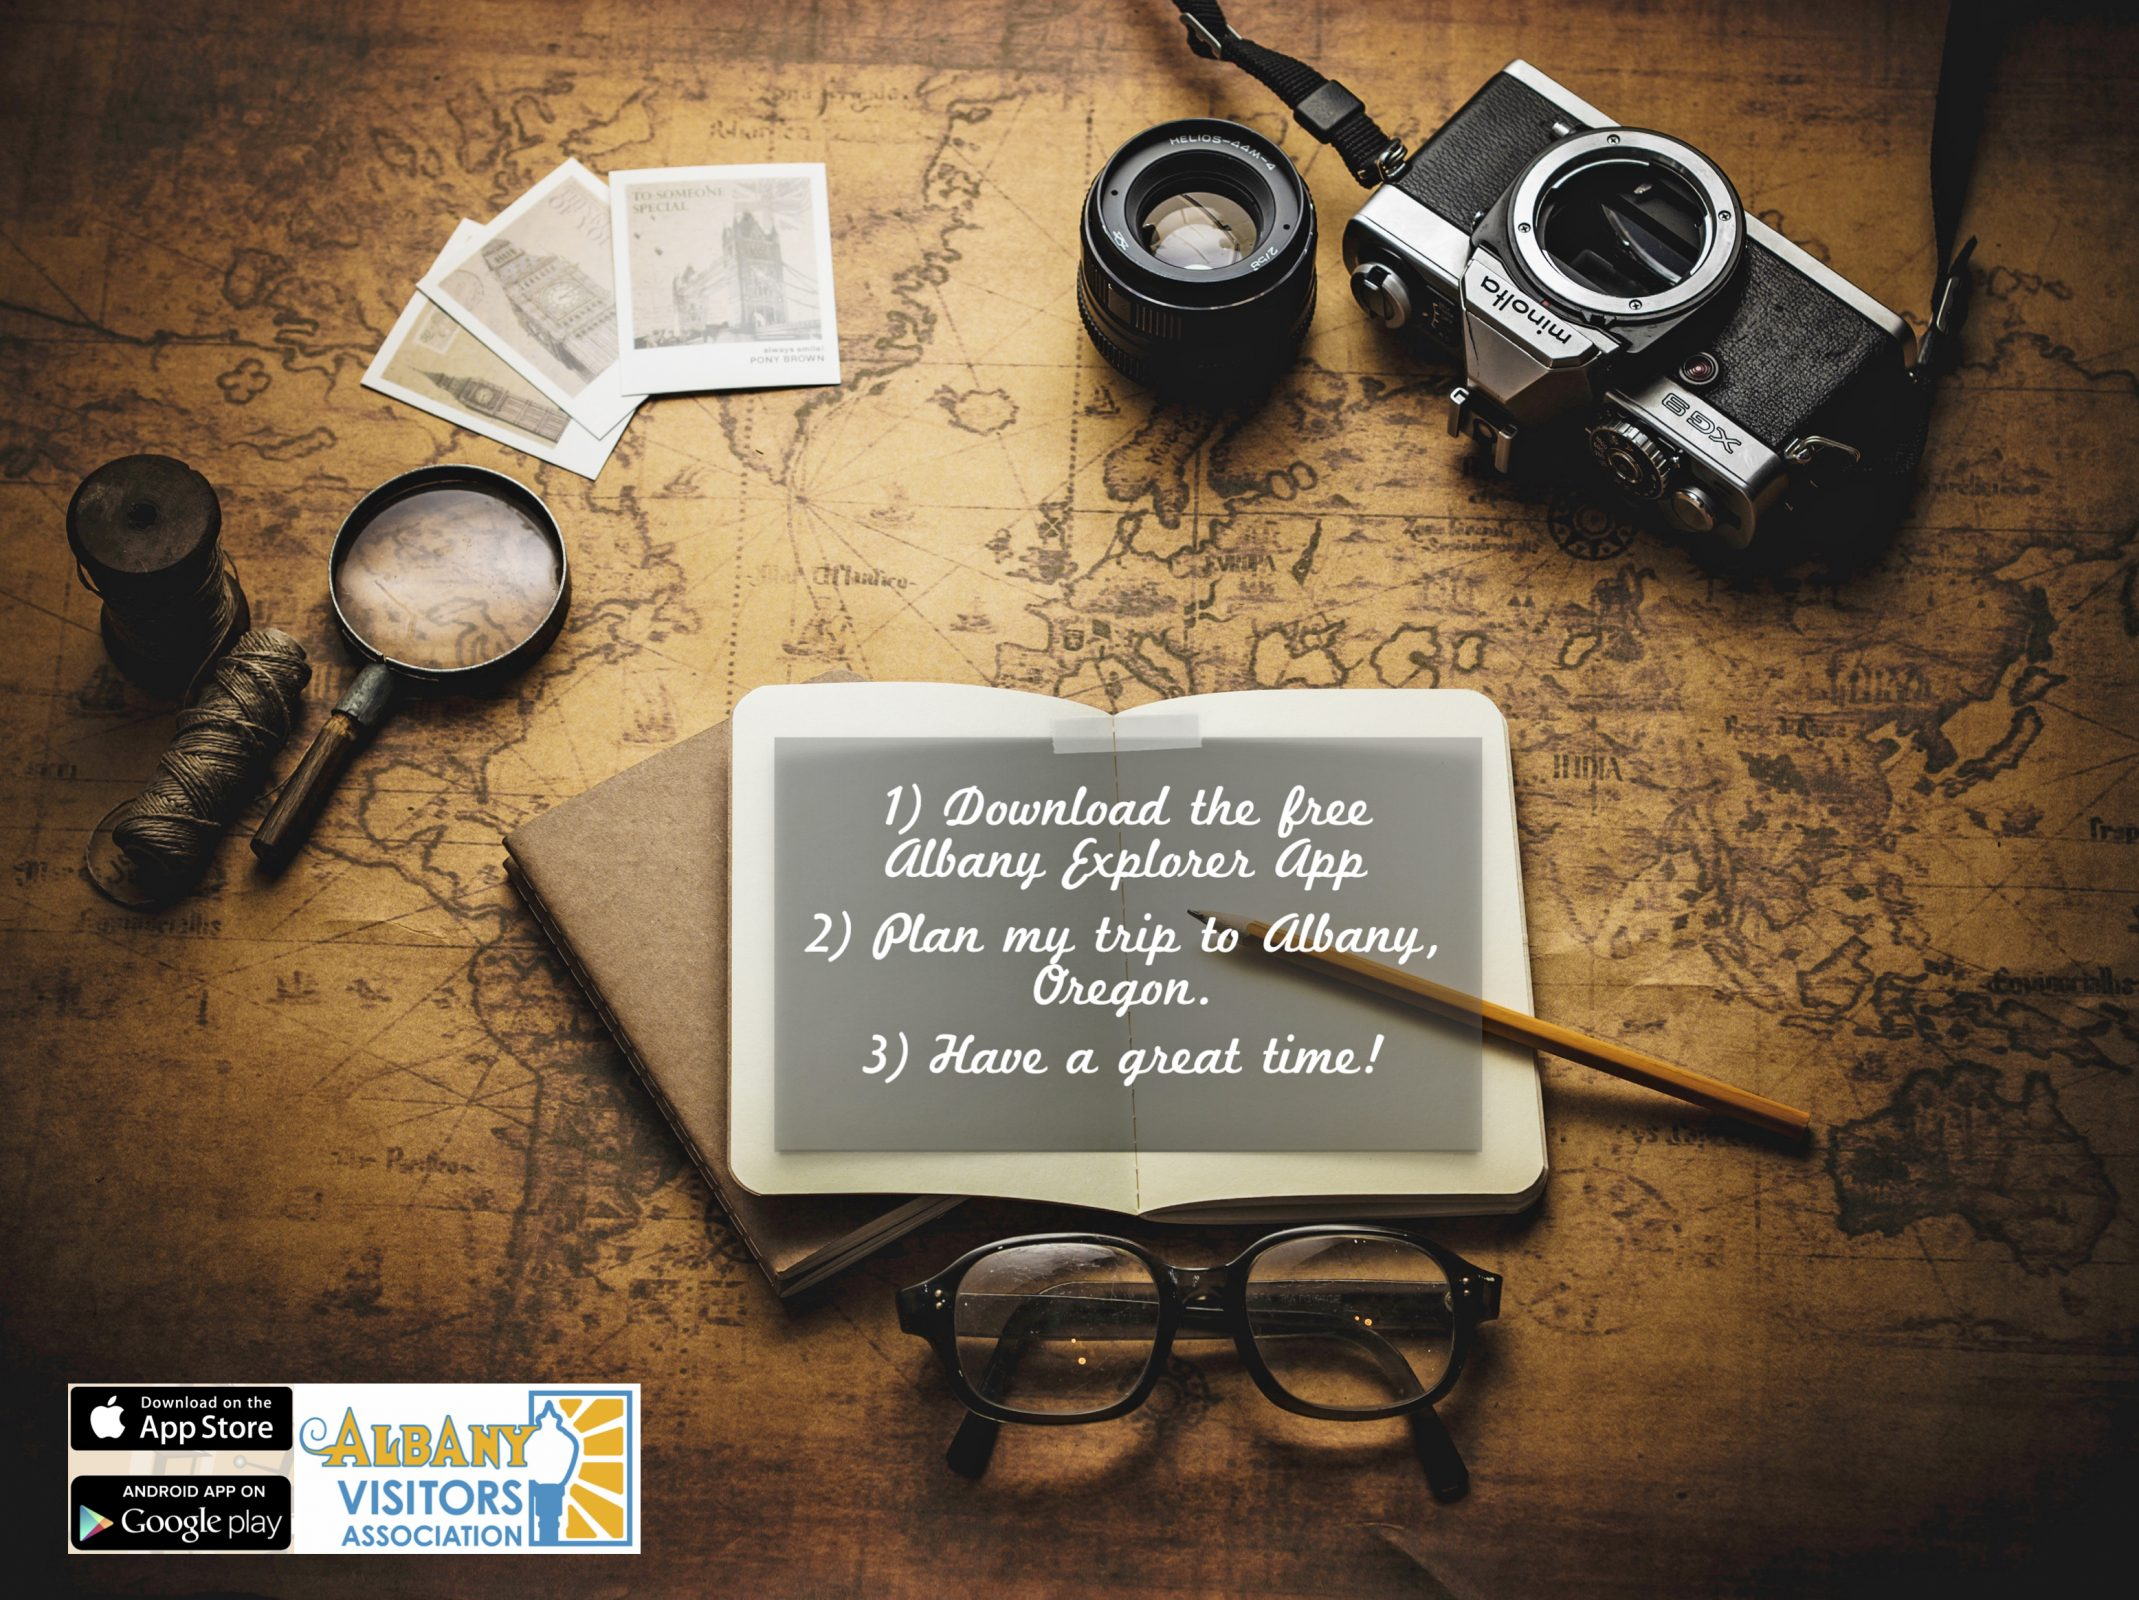 Graphic showing a camera, a map, magnifying glass, cards, and eyeglasses for the Albany Explorer App